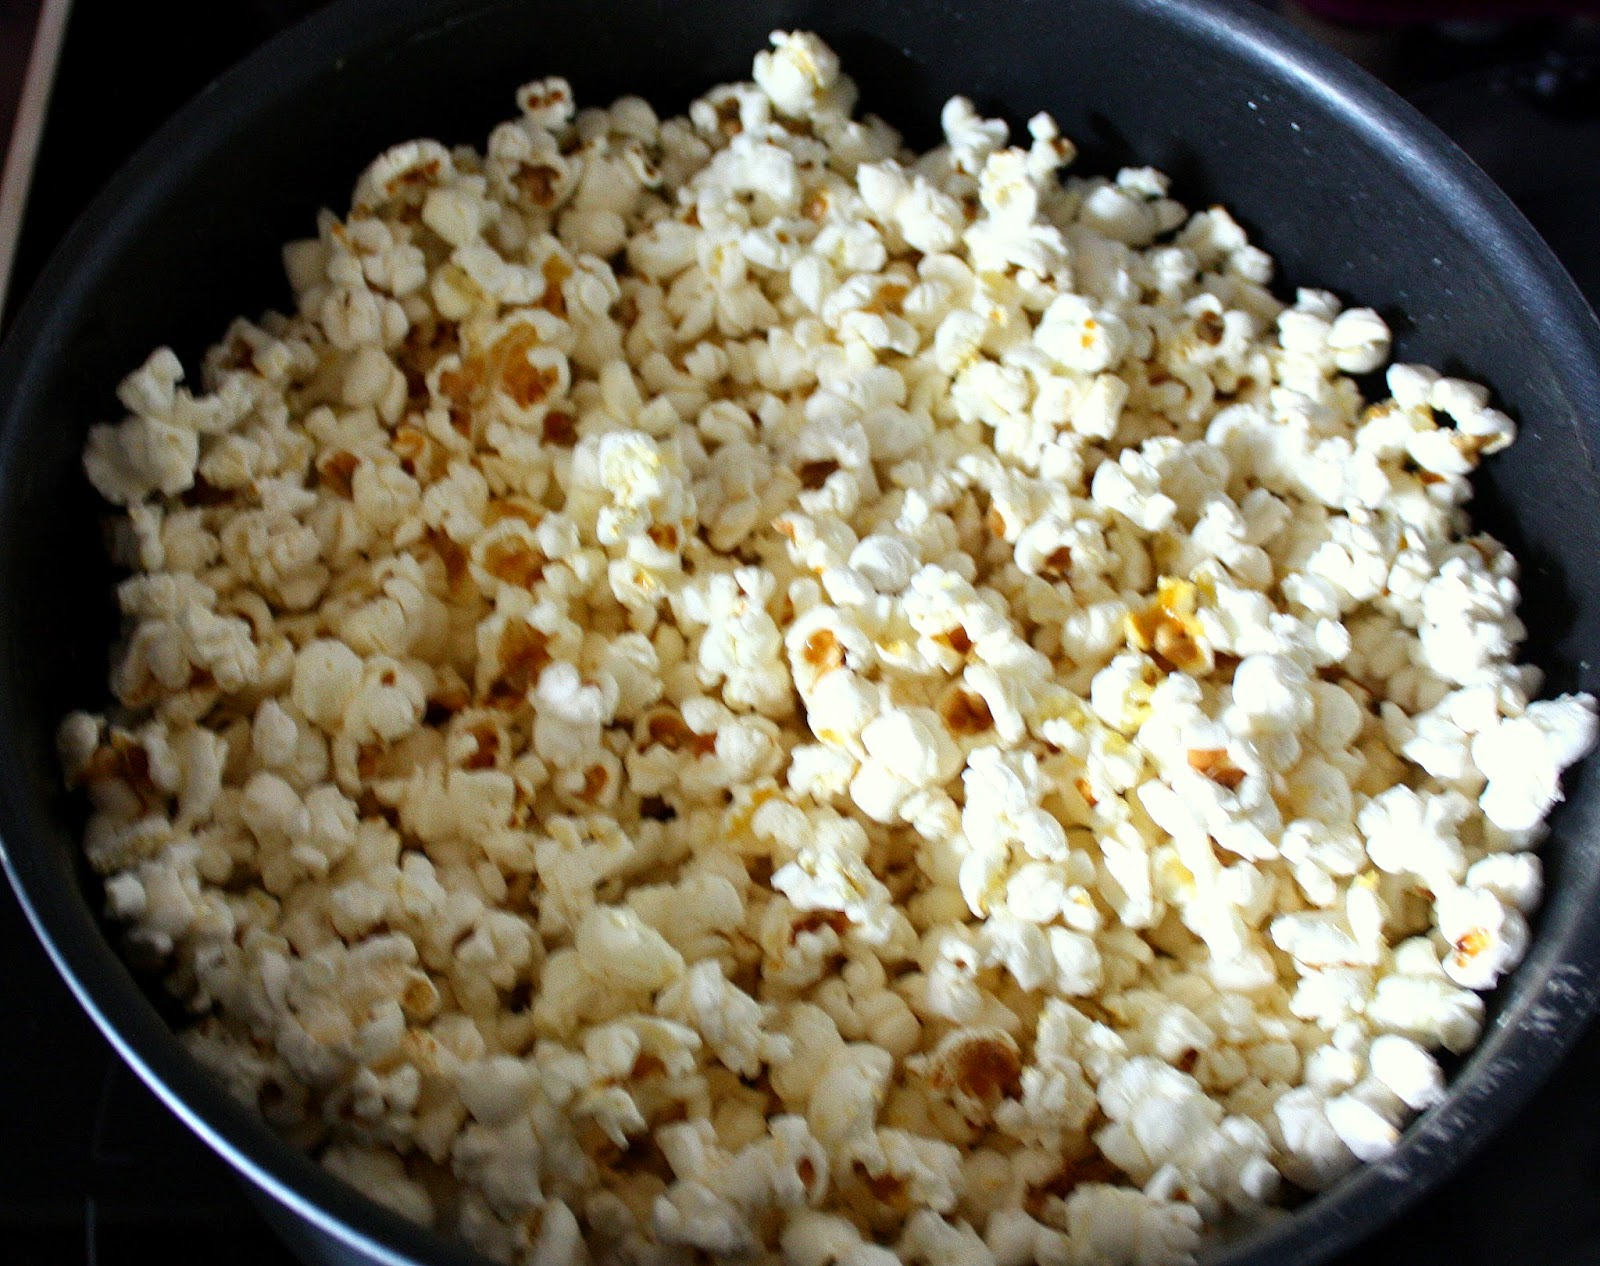 my culinary curriculum pop corn sucr ou sal maison sweet or salty popcorn home made. Black Bedroom Furniture Sets. Home Design Ideas